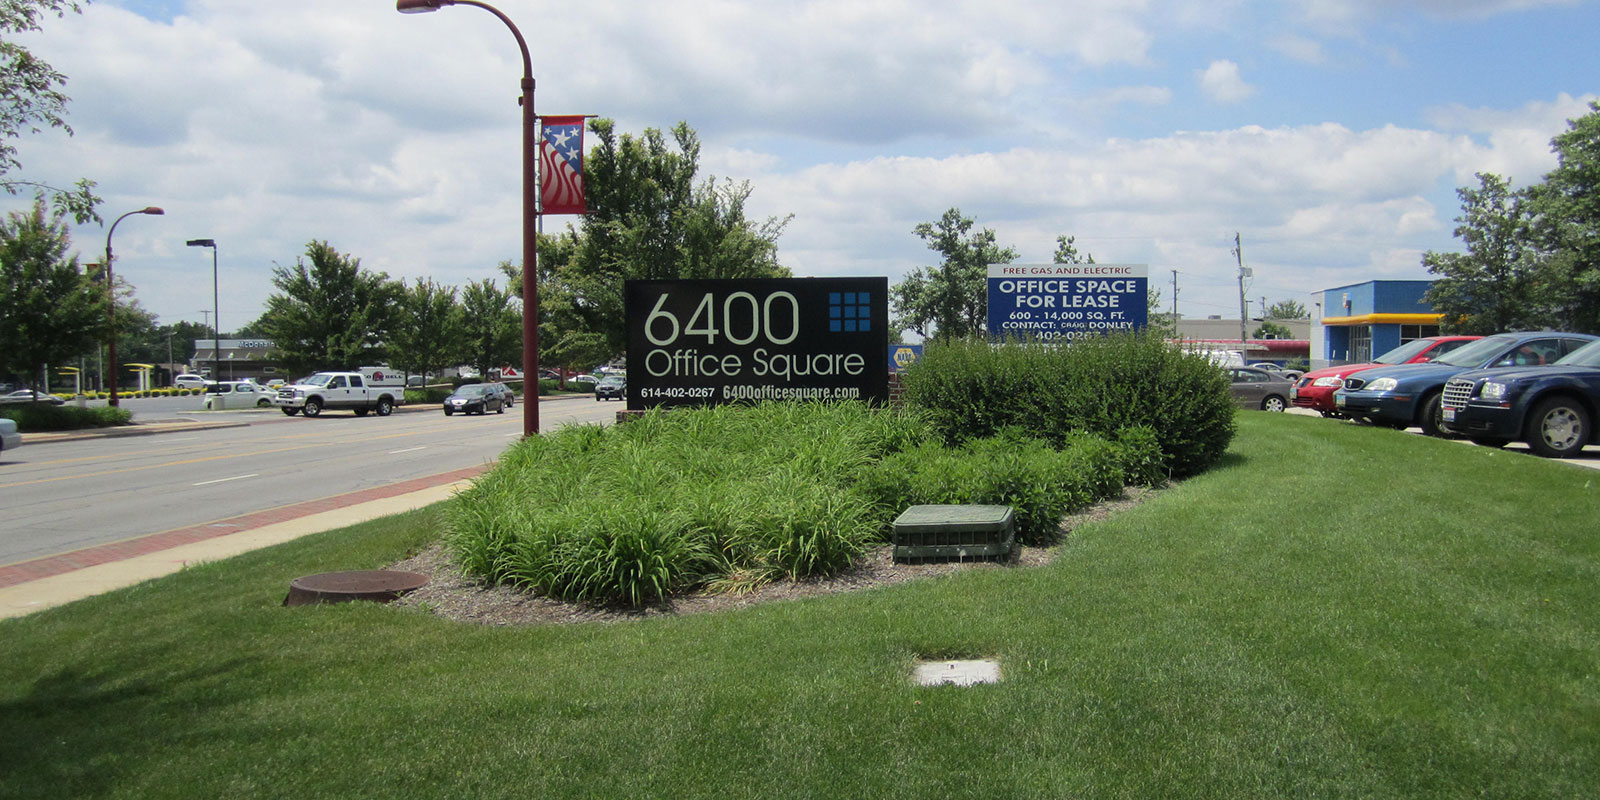 6400 Office Square - Rynoldburg Ohio